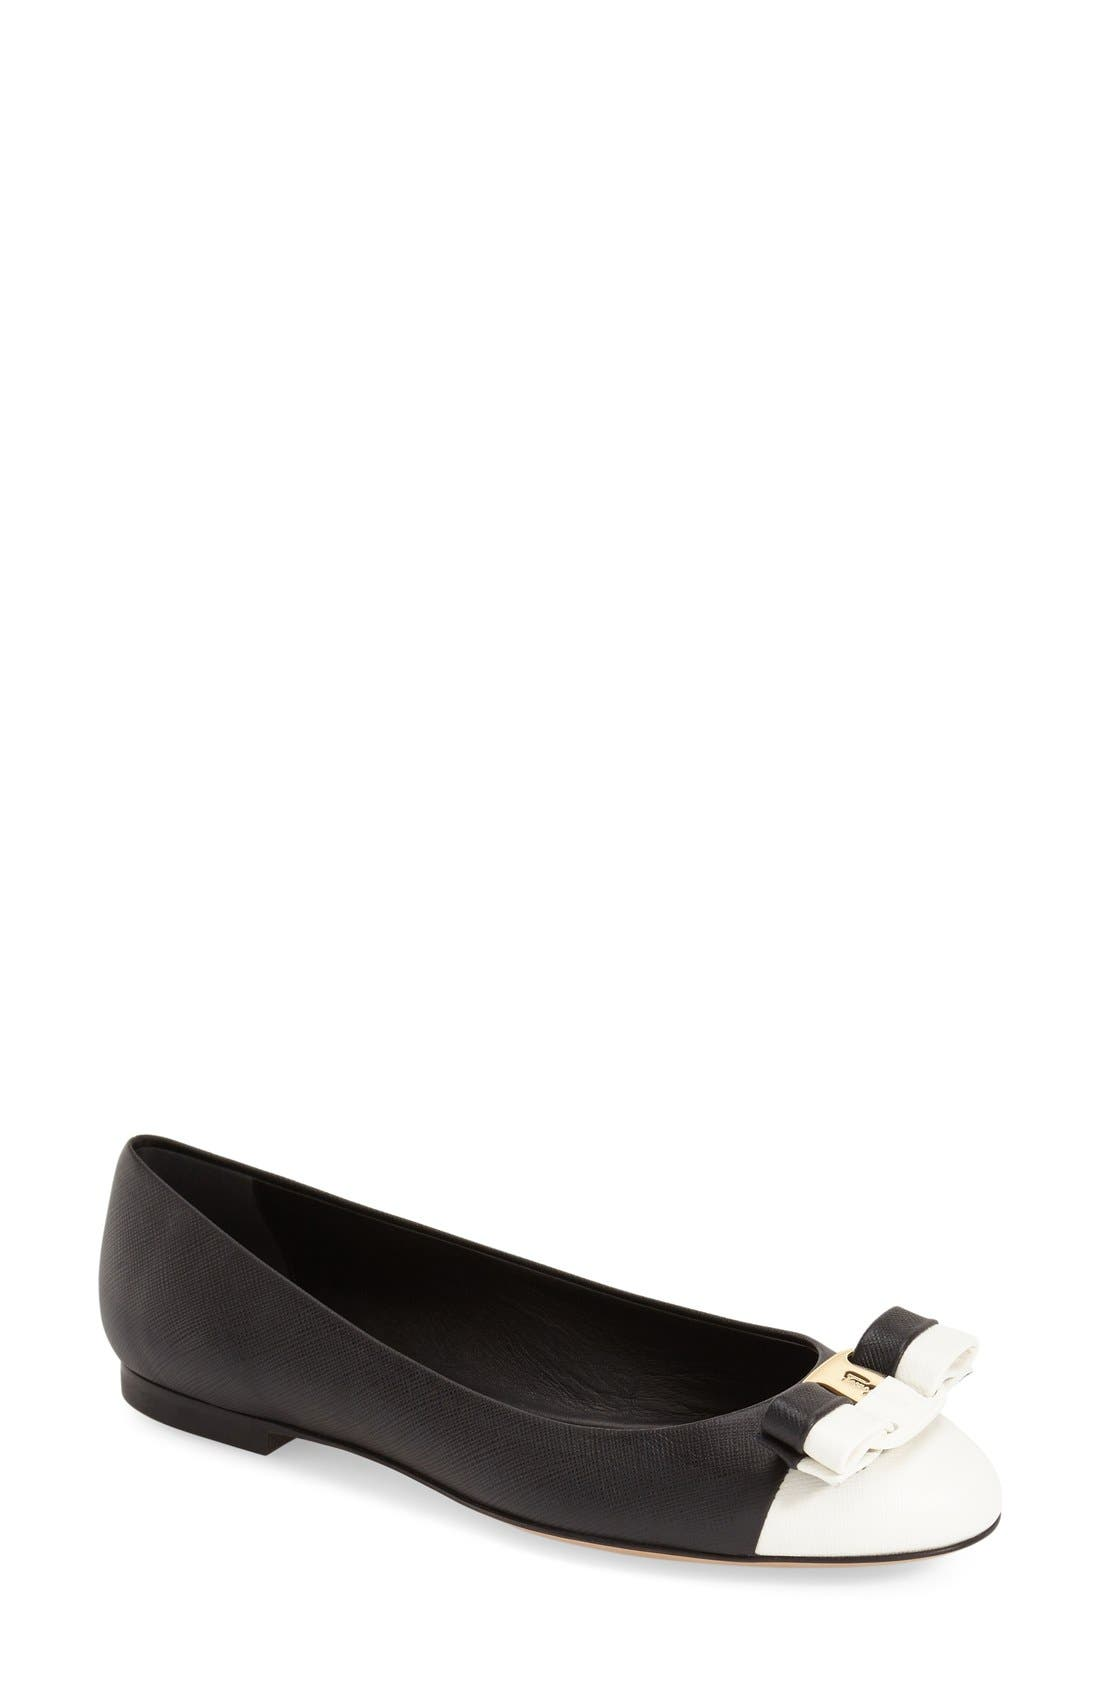 Alternate Image 1 Selected - Salvatore Ferragamo 'Varina' Flat (Women)